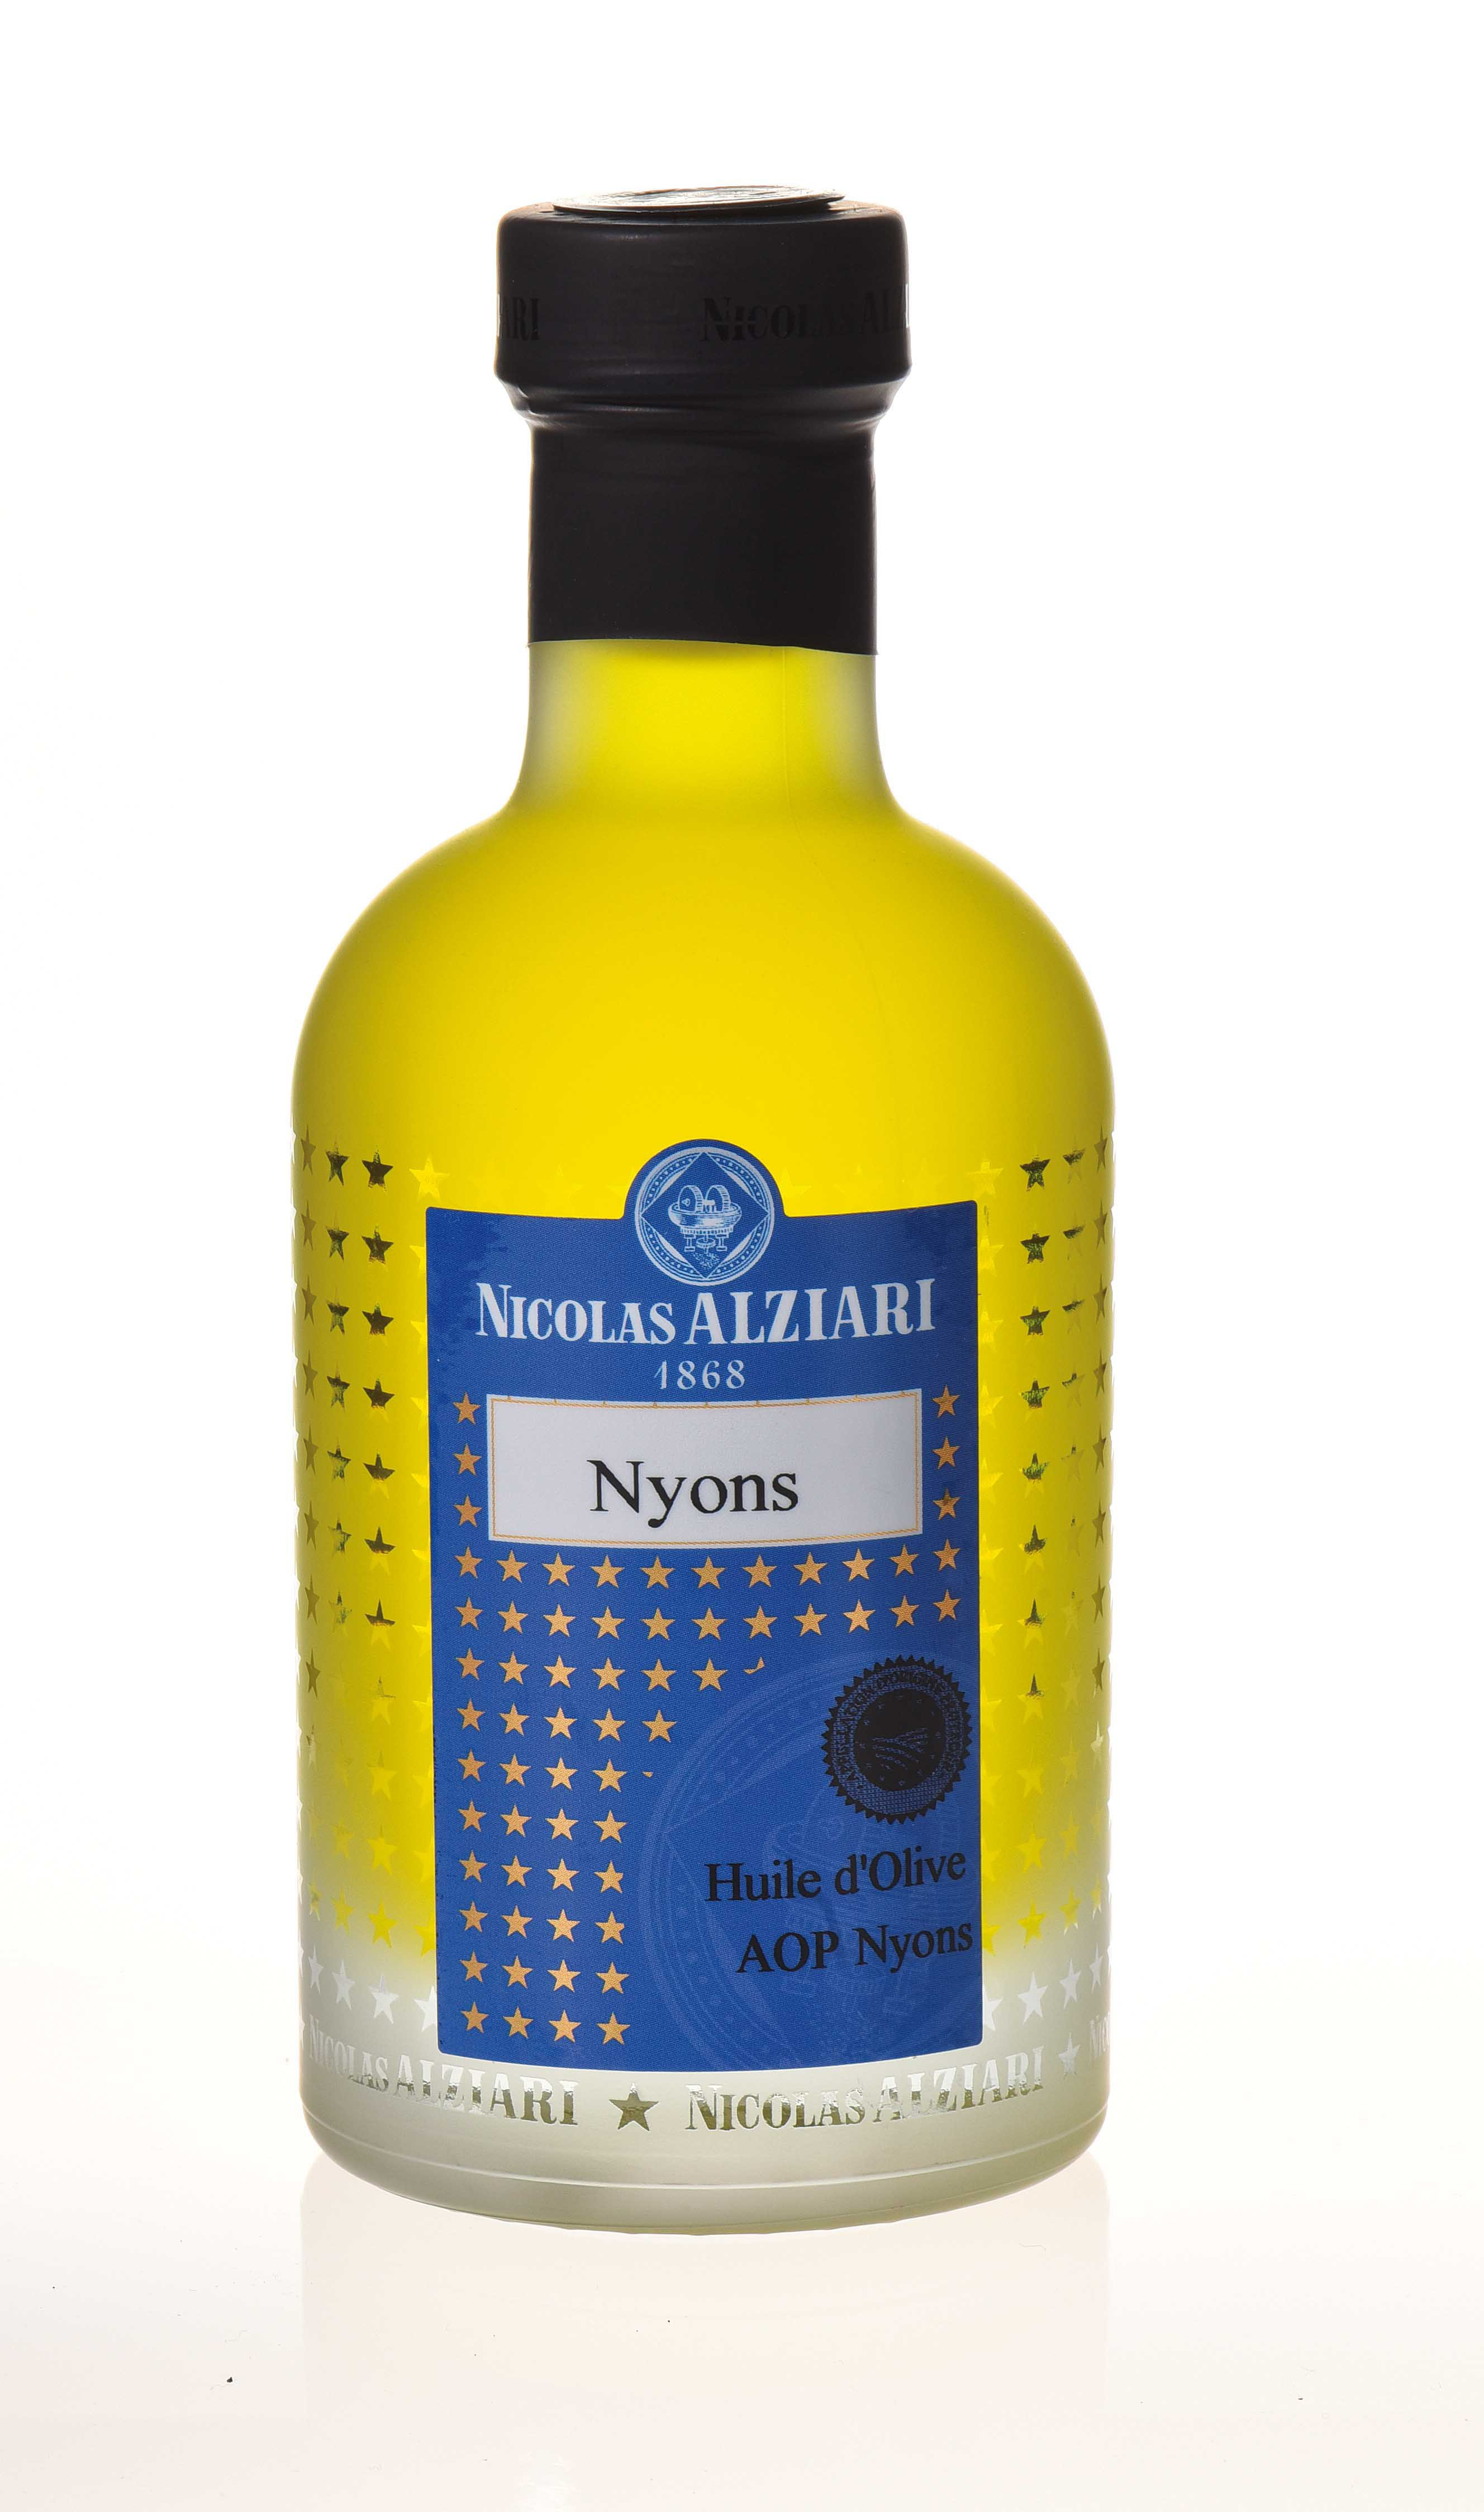 Huile d'olive AOP NYONS 200 ml